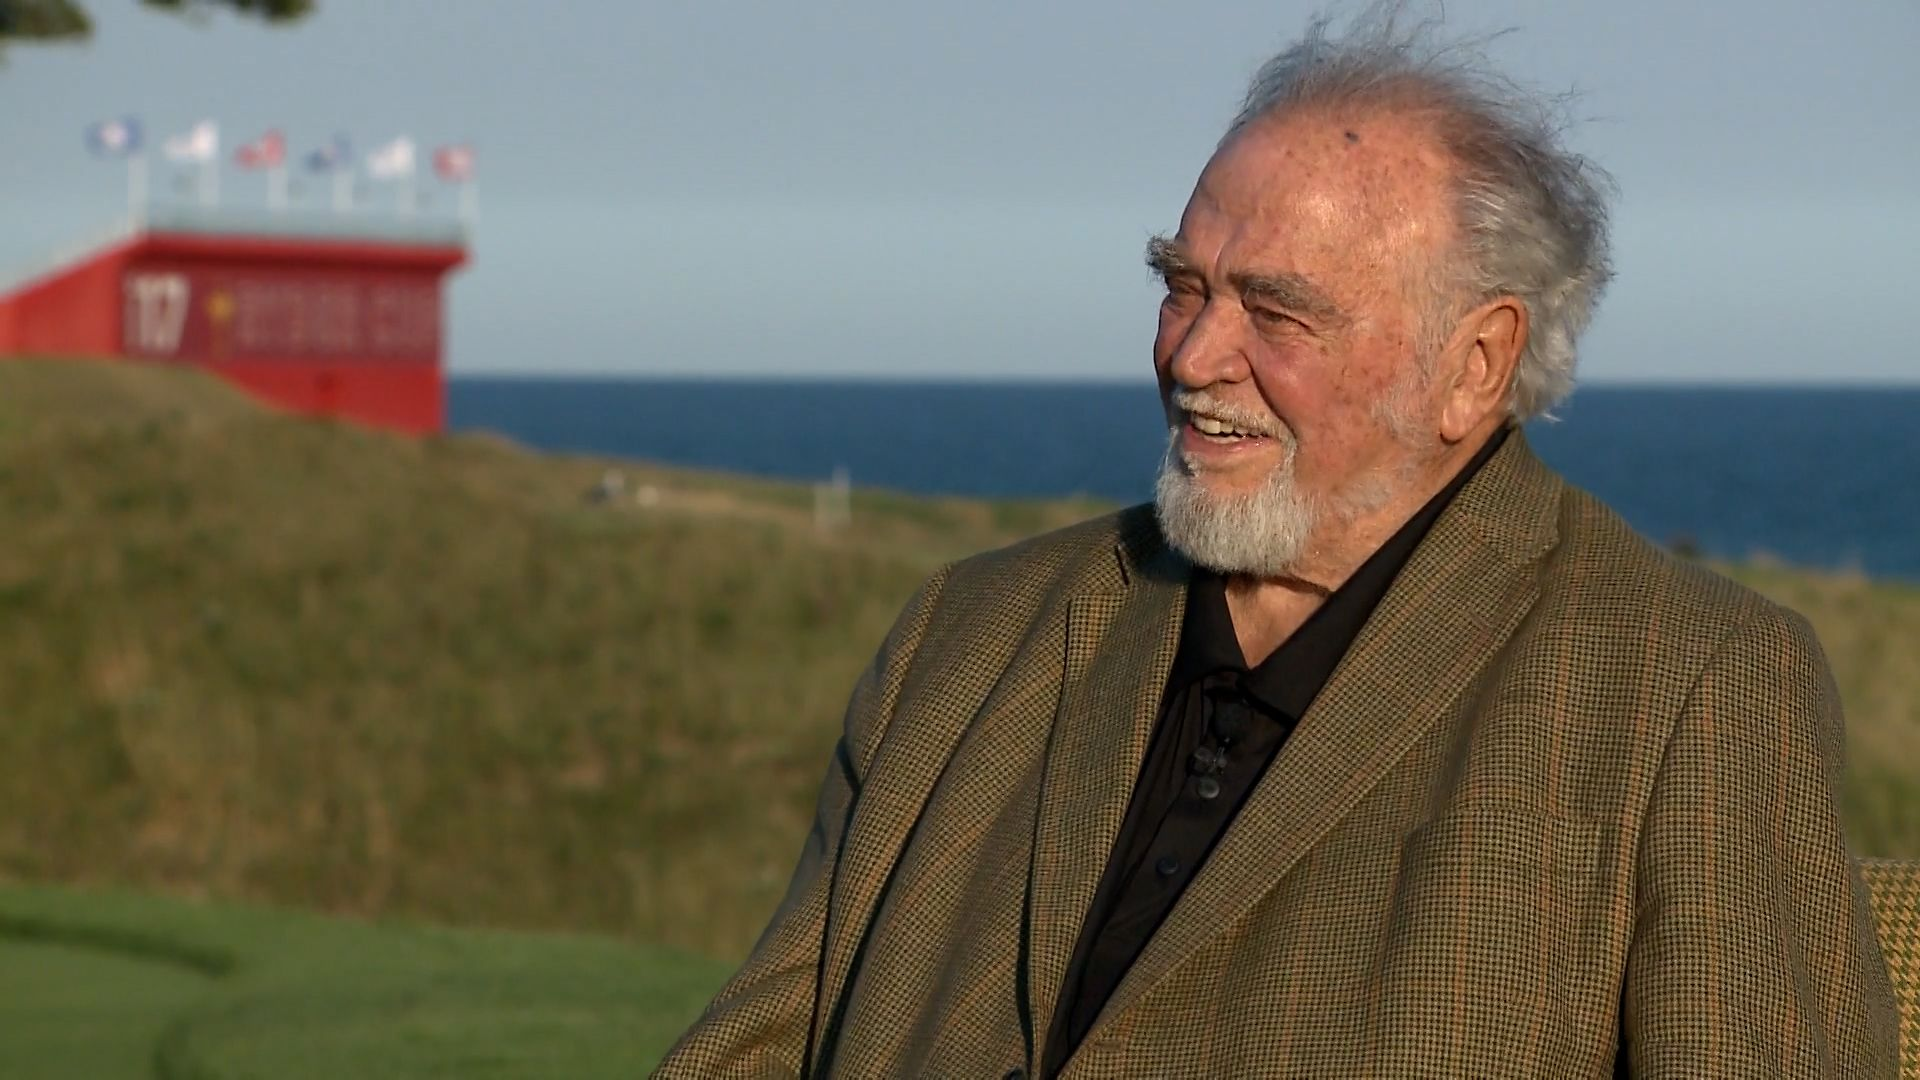 'You don't get bigger or better than the Ryder Cup': Exclusive interview with Herbert Kohler